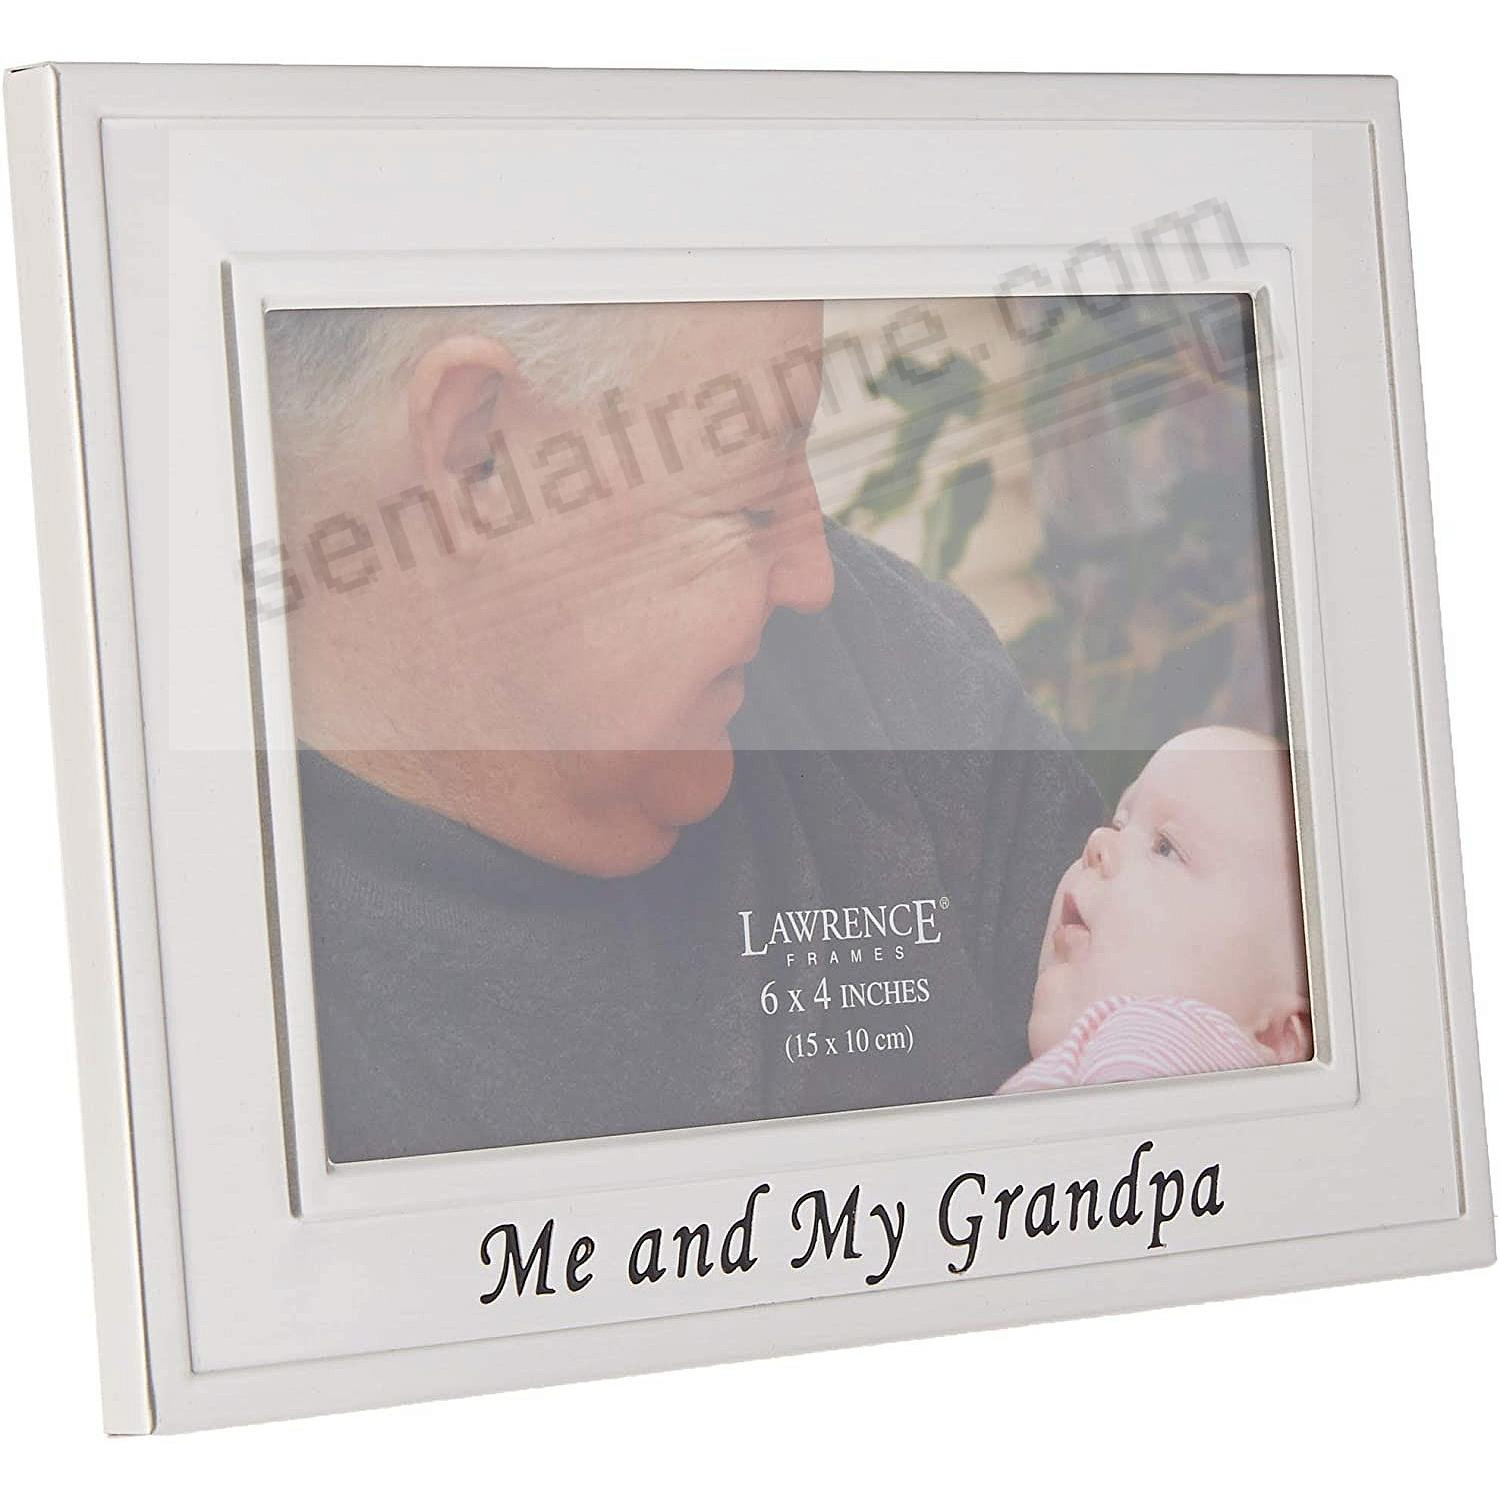 Lawrence Frames Me And My Grandpa Brushed Silver 6x4 Frame